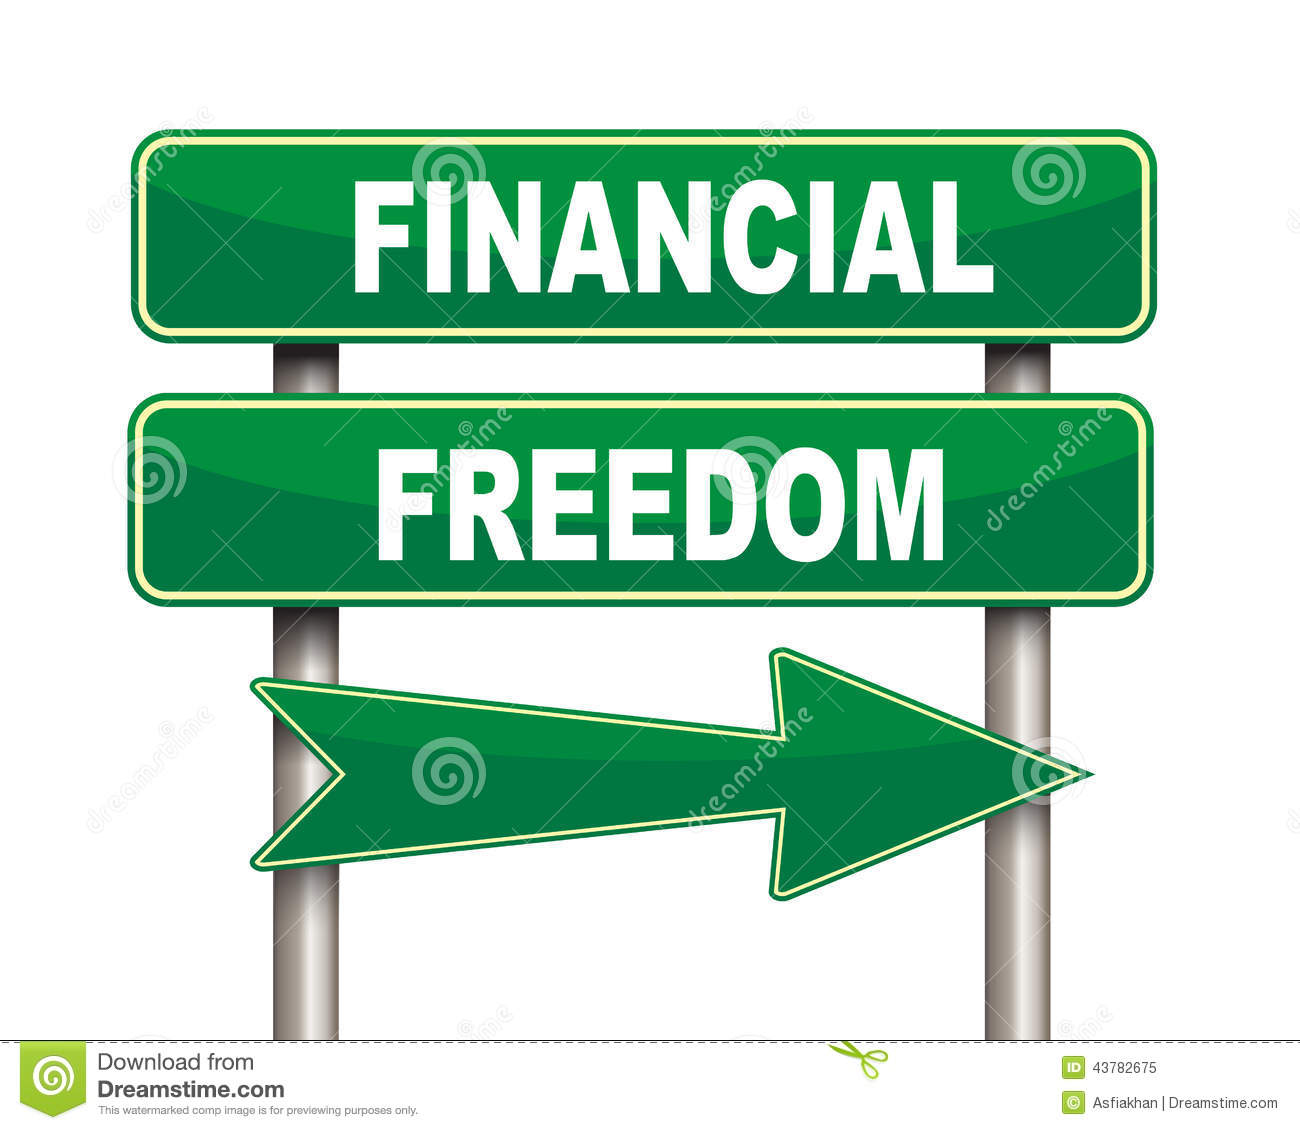 Financial: Financial Freedom Green Road Sign Stock Illustration